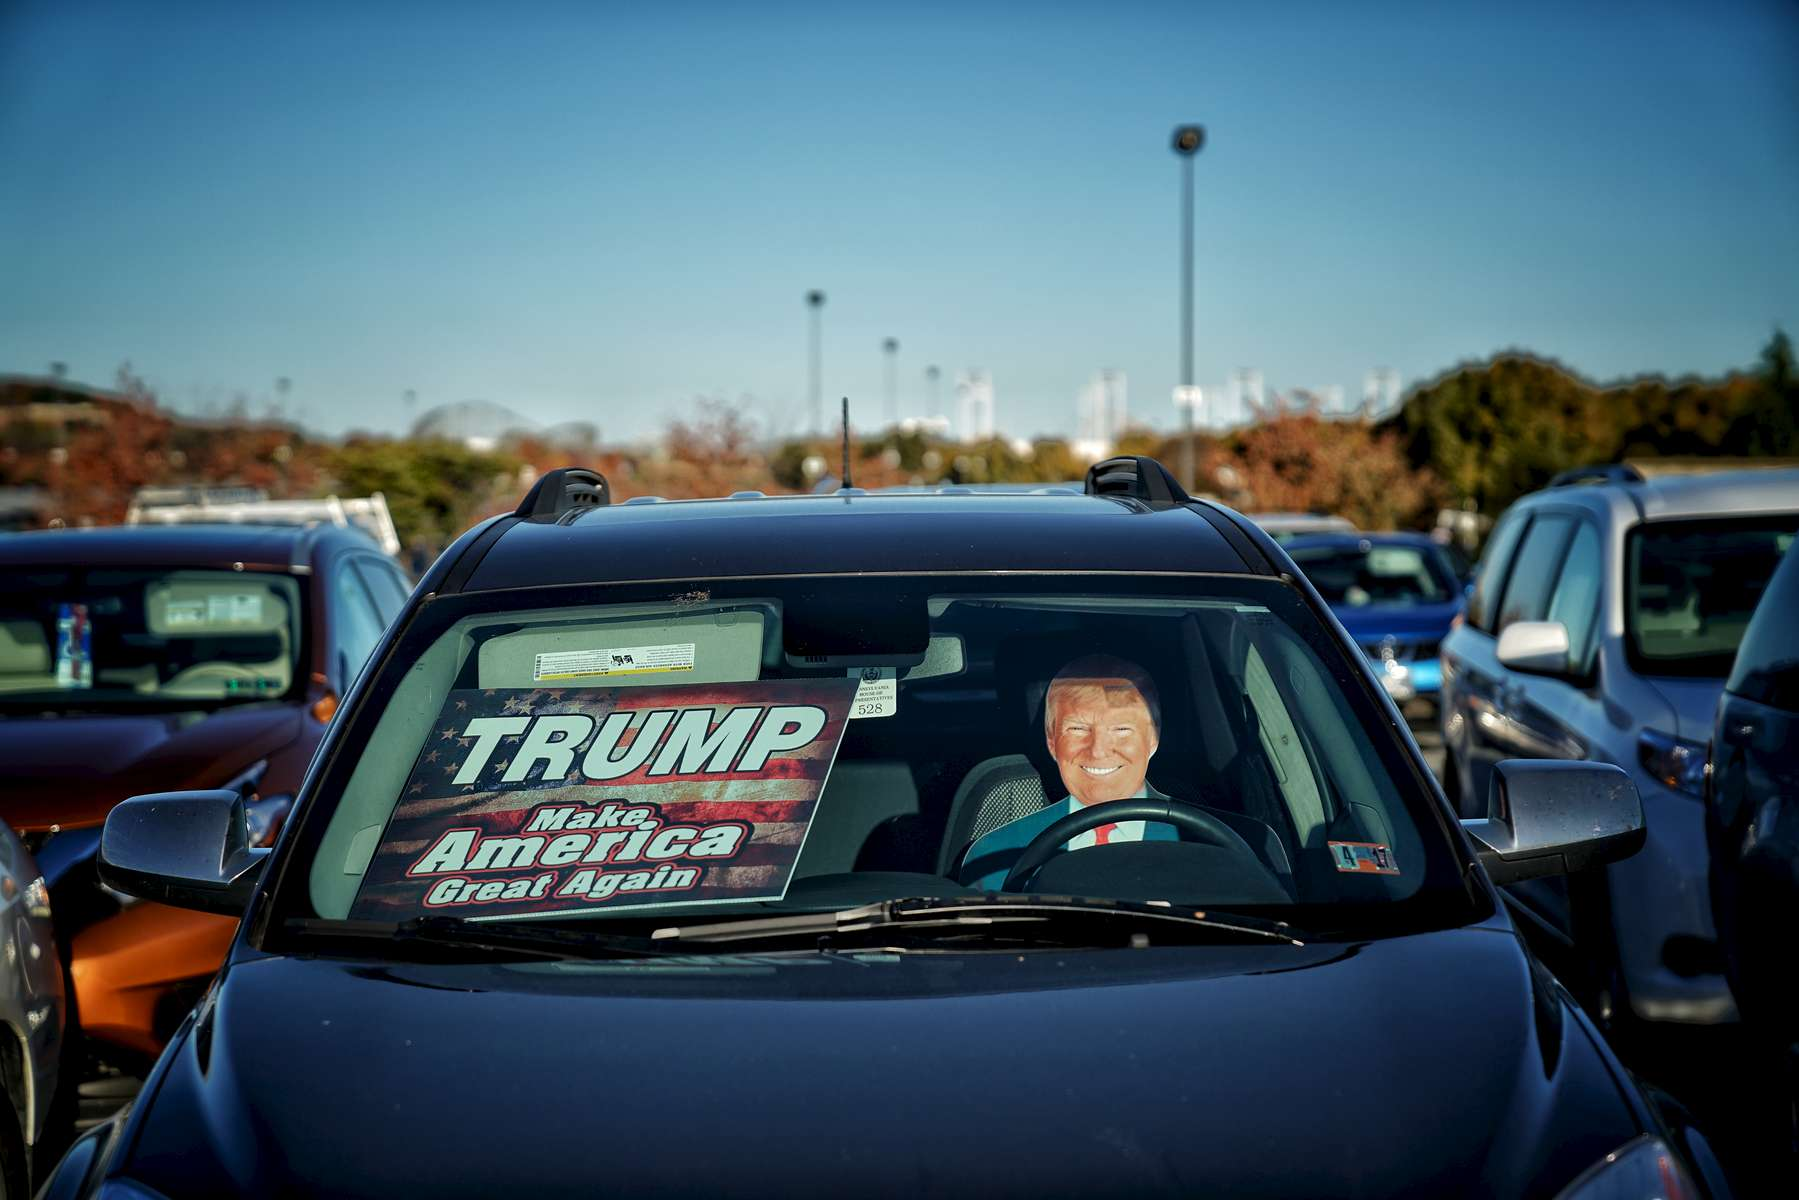 A car decorated with a Donald Trump sun visor is parked  at a campaign rally at the Giant Center November 4, 2016 in Hershey, Pennsylvania. With less than a week before Election Day in the United States, Trump and his opponent, Democratic presidential nominee Hillary Clinton, are campaigning in key battleground states that each must win to take the White House. (Photo by Ben Lowy for Time Magazine)